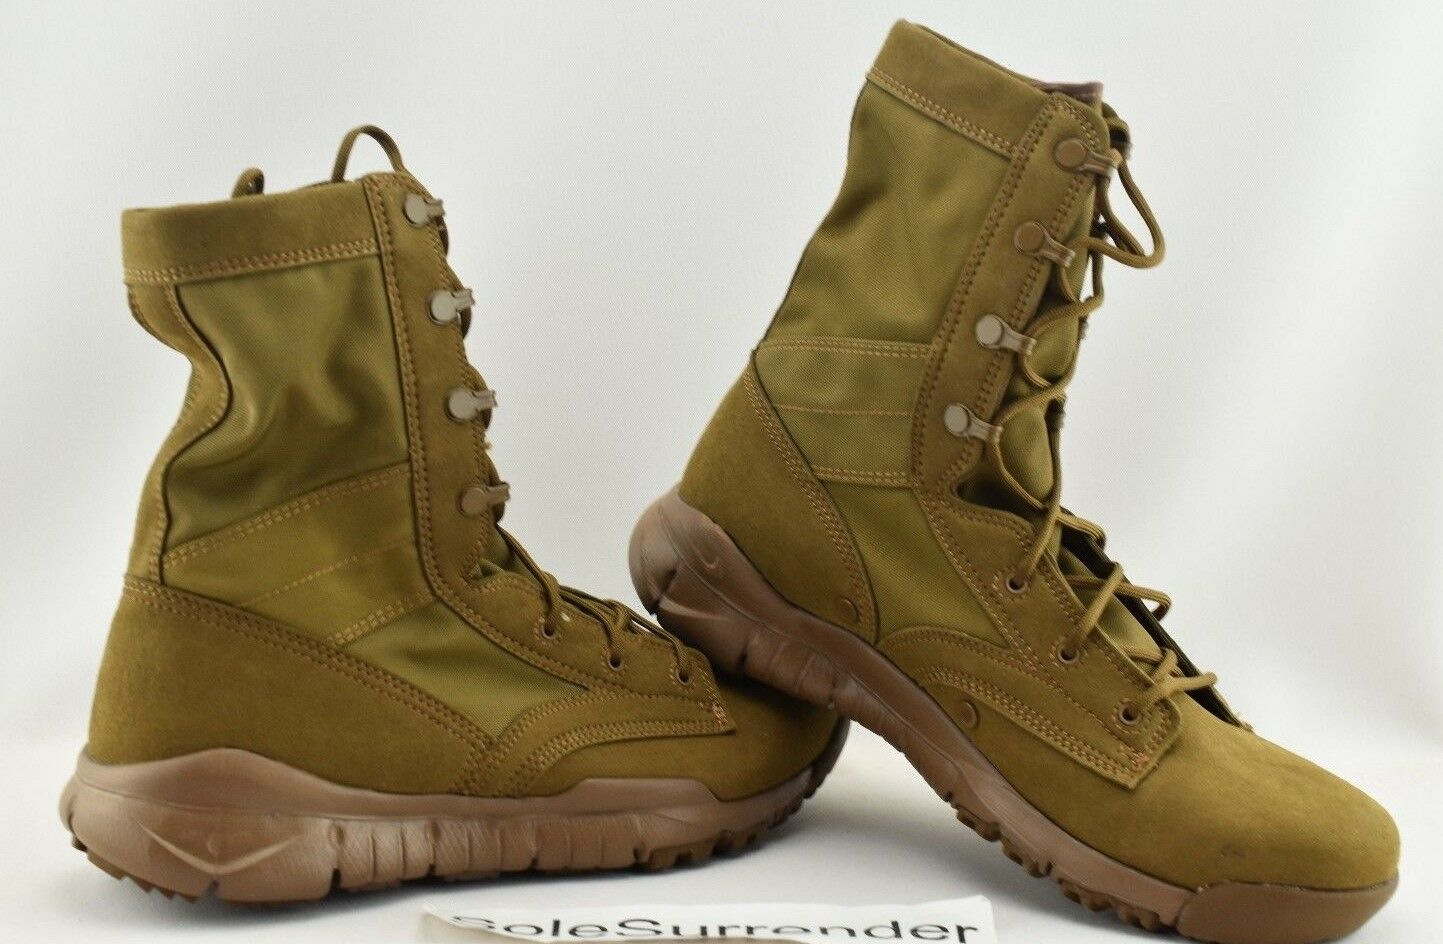 Nike SFB Boots - - - CHOOSE SIZE - 329798-990 Tactical Military Coyote Special Field 5e5a97